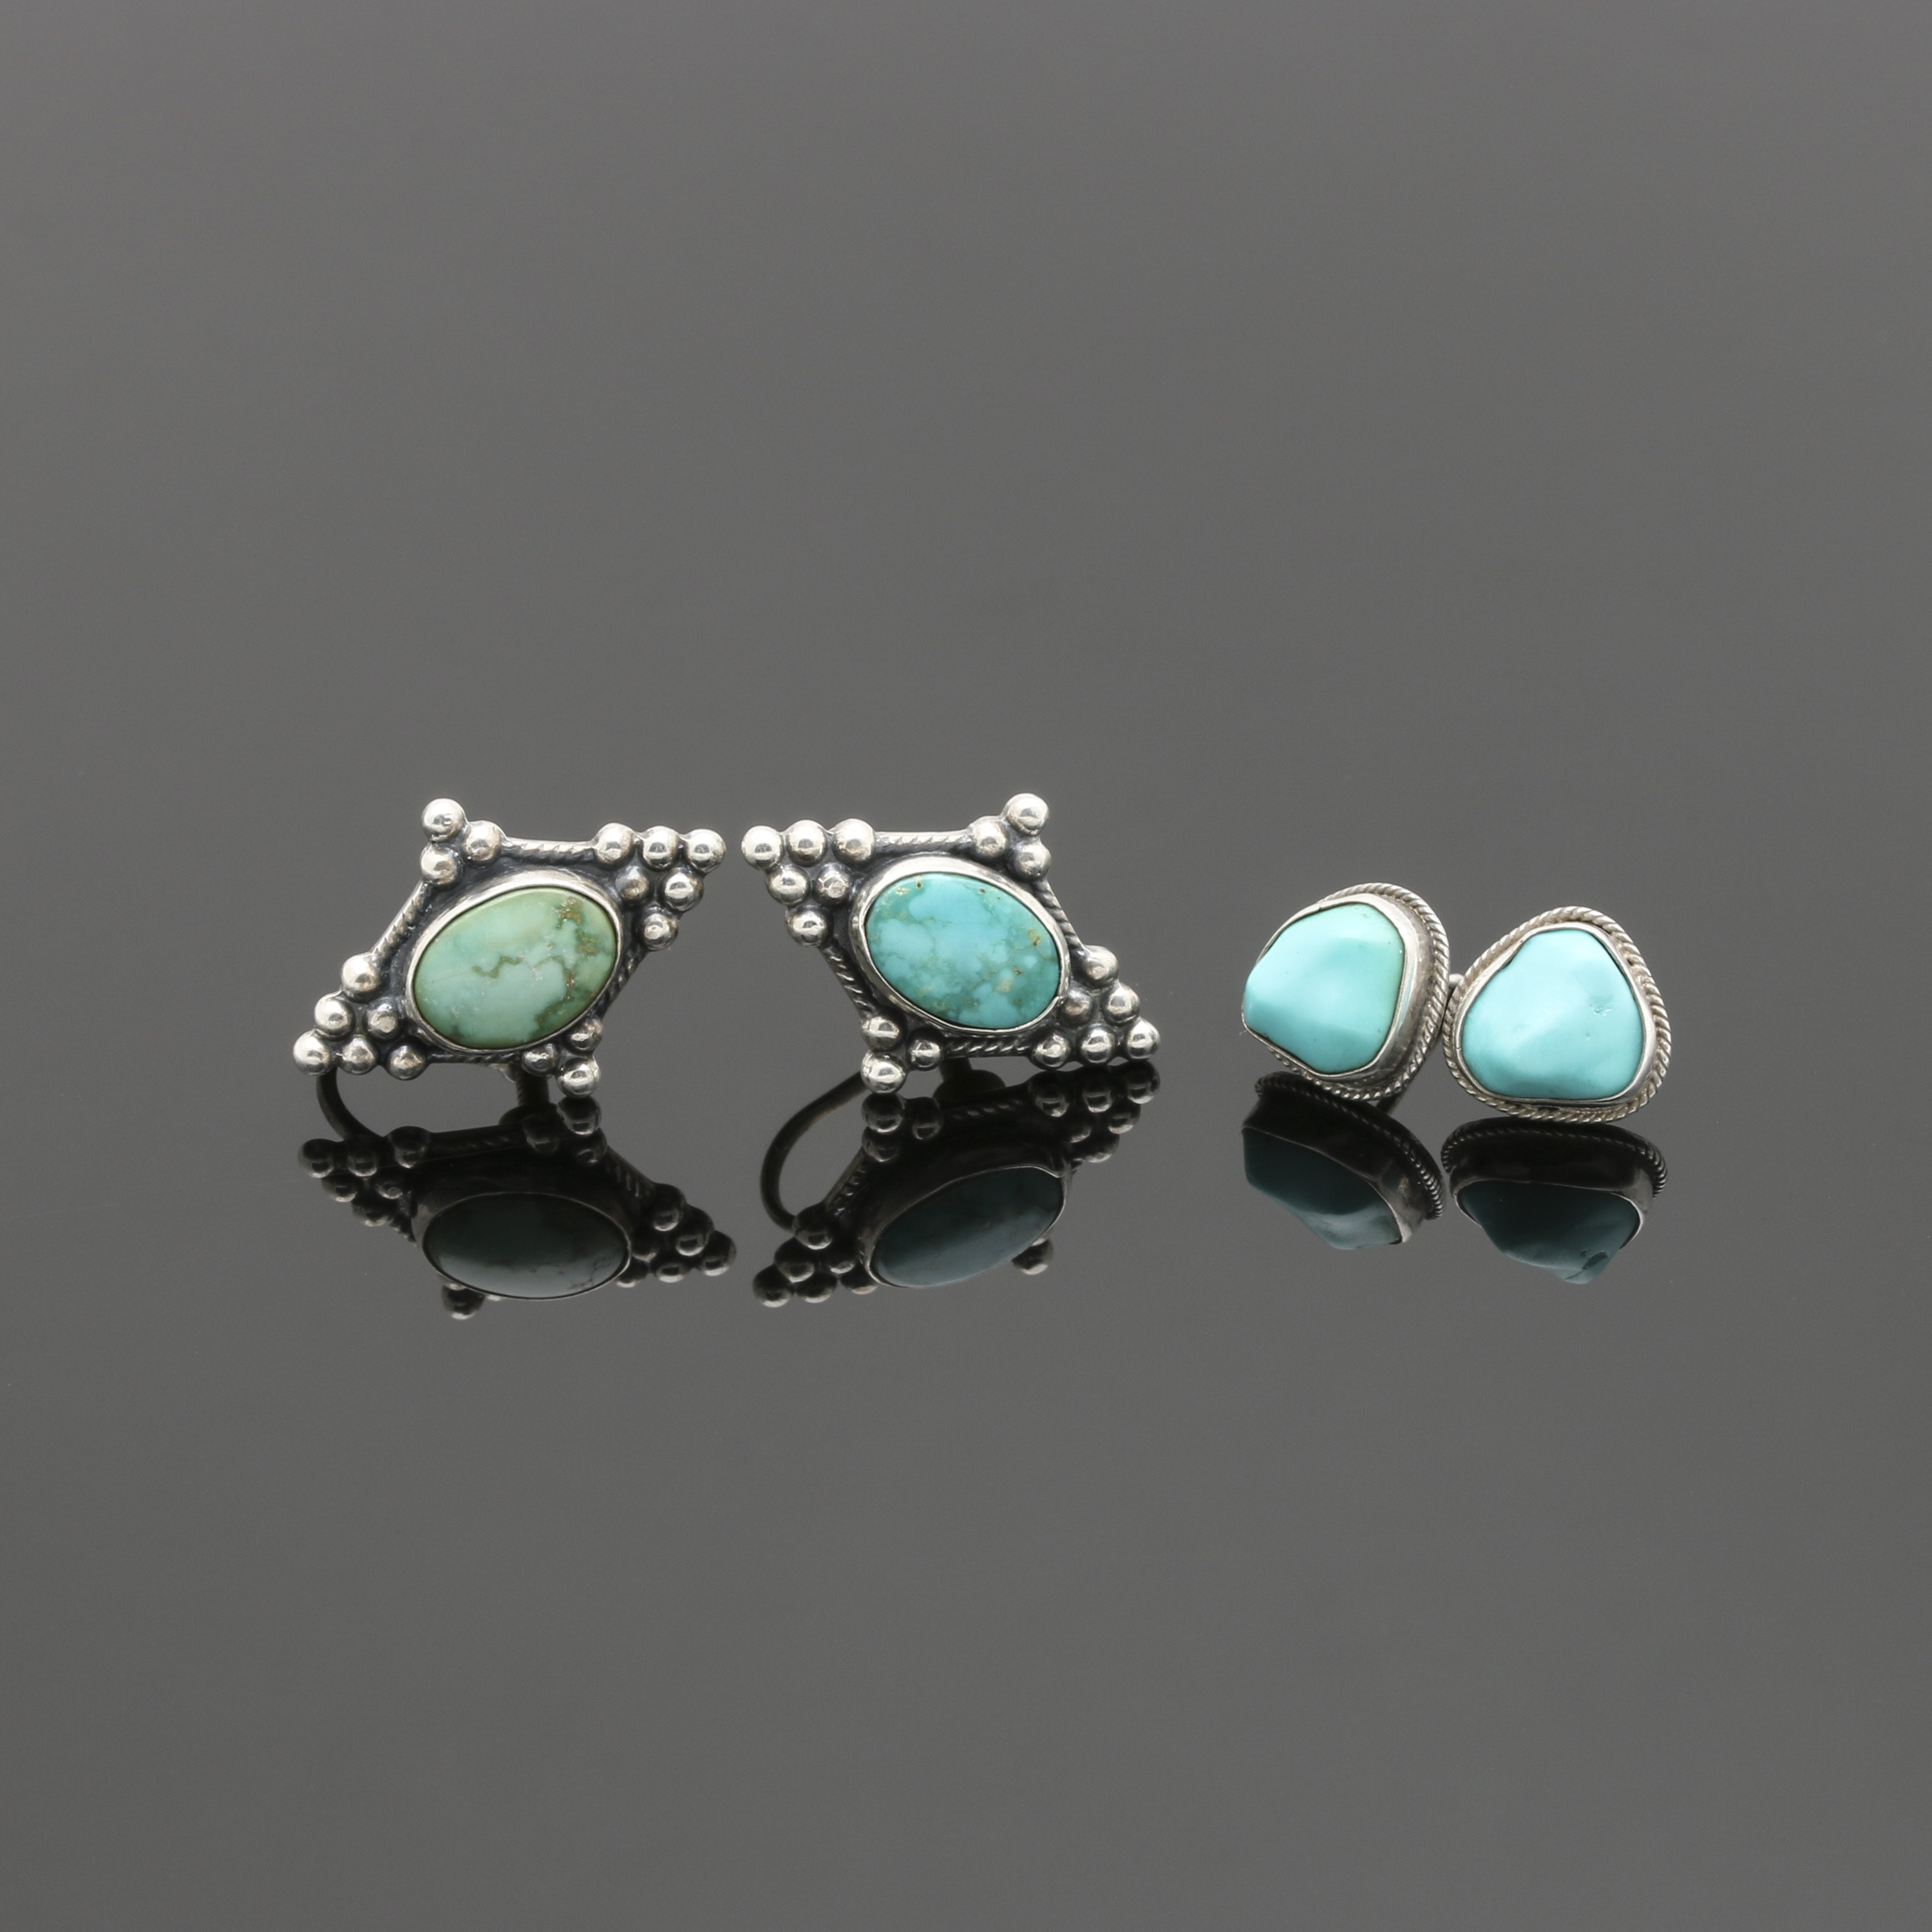 Southwestern Style Sterling Silver Turquoise Earring Selection